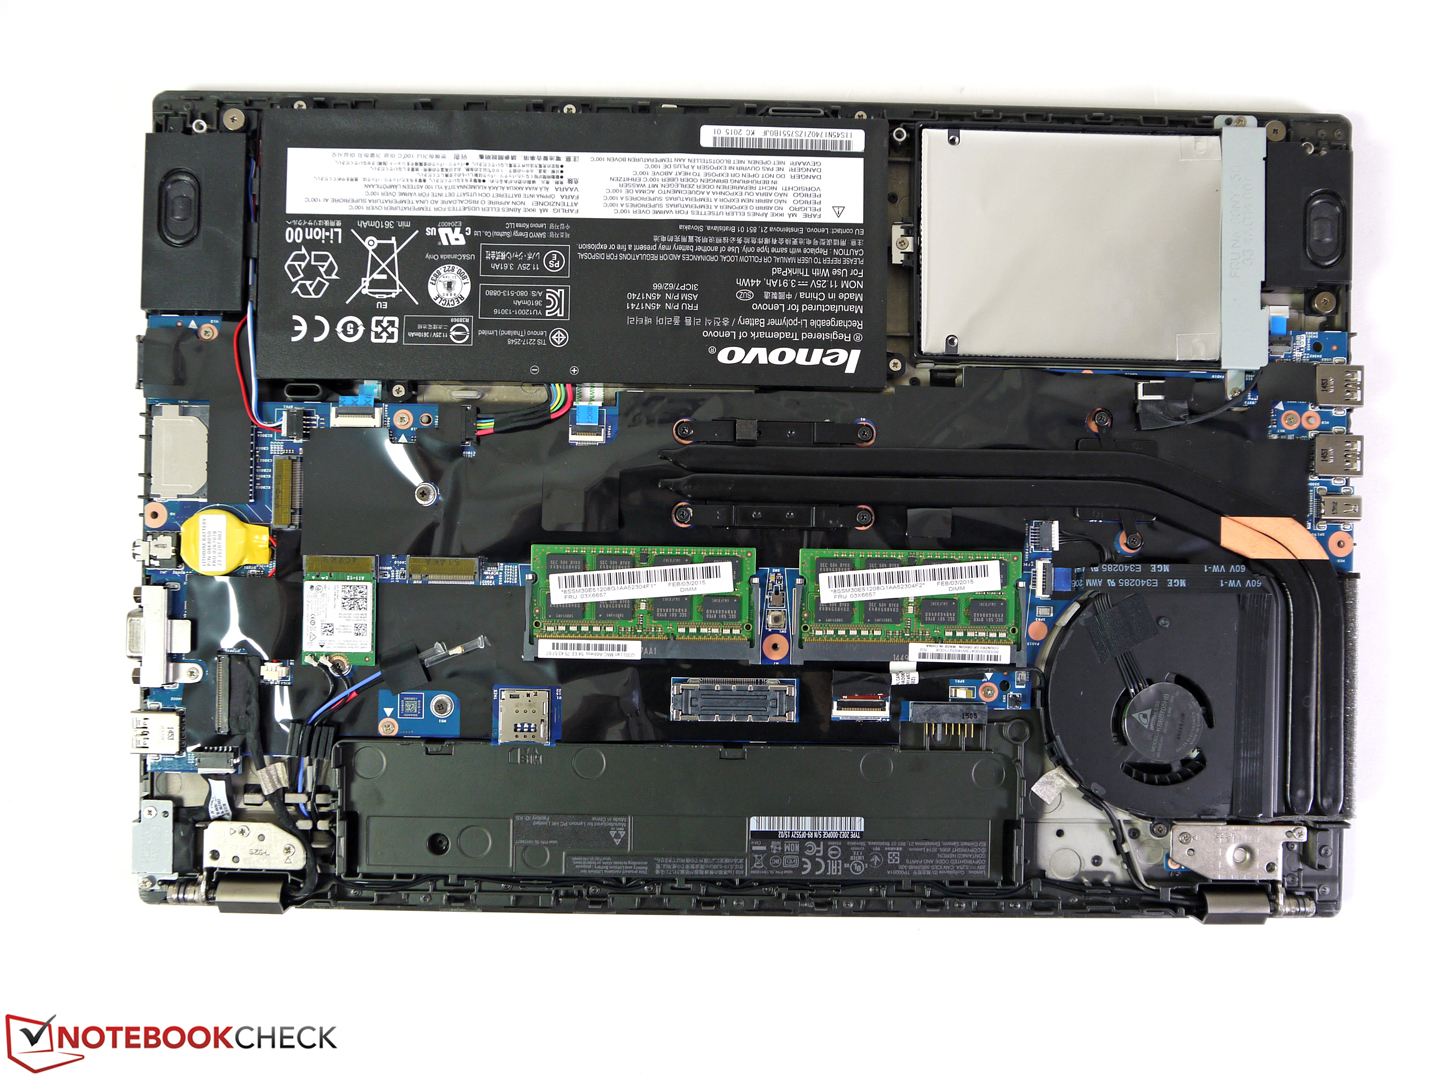 https://www.notebookcheck.net/fileadmin/Notebooks/Lenovo/ThinkPad_W550s_20E2-000PGE/W550s_54_Kopie.jpg